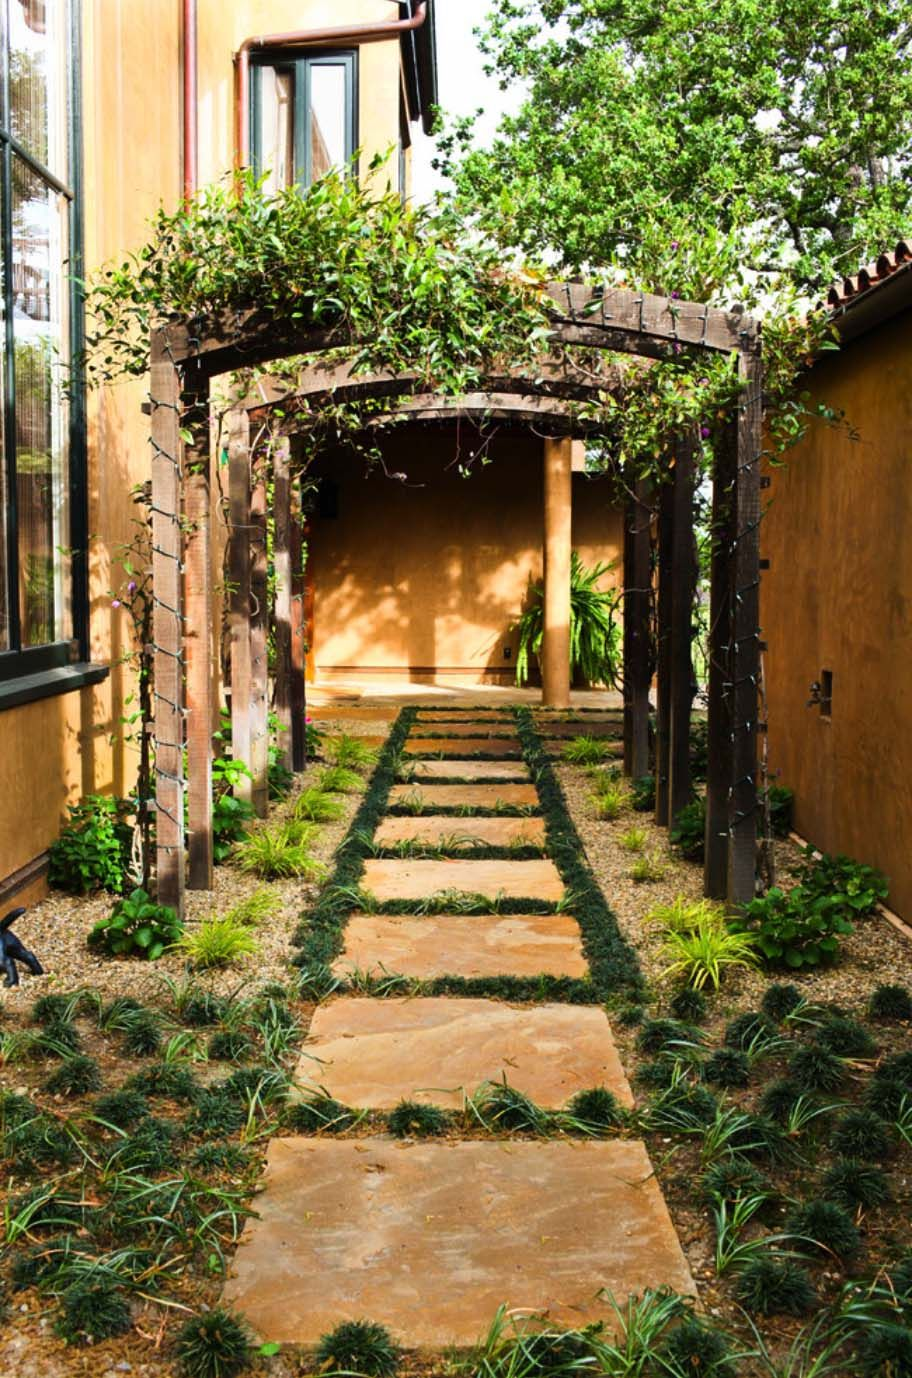 40 Brilliant ideas for stone pathways in your garden | Pathway ideas ...